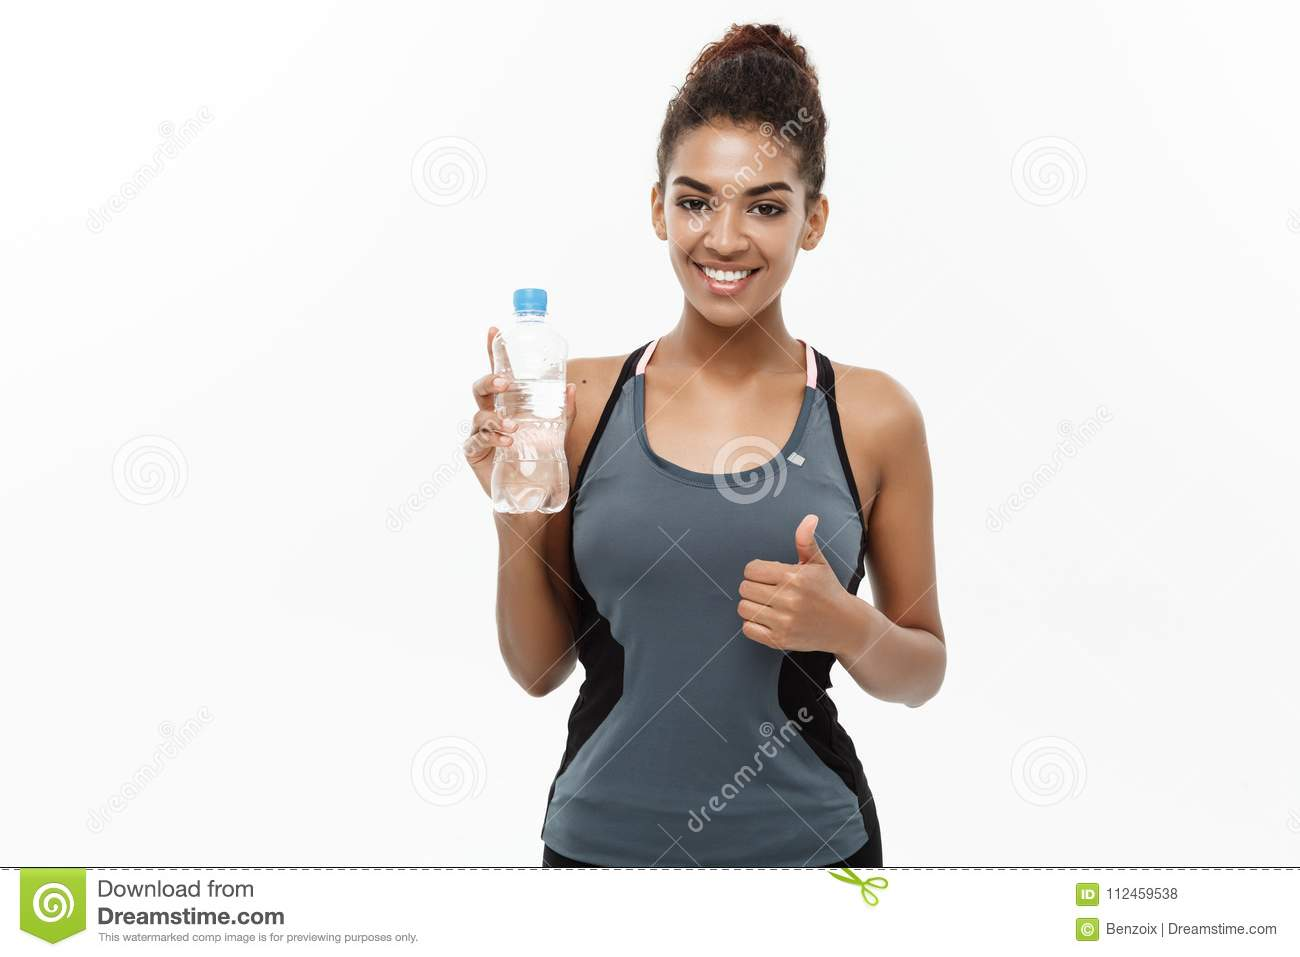 Healthy and Fitness concept - beautiful African American girl in sport clothes holding plastic water bottle after